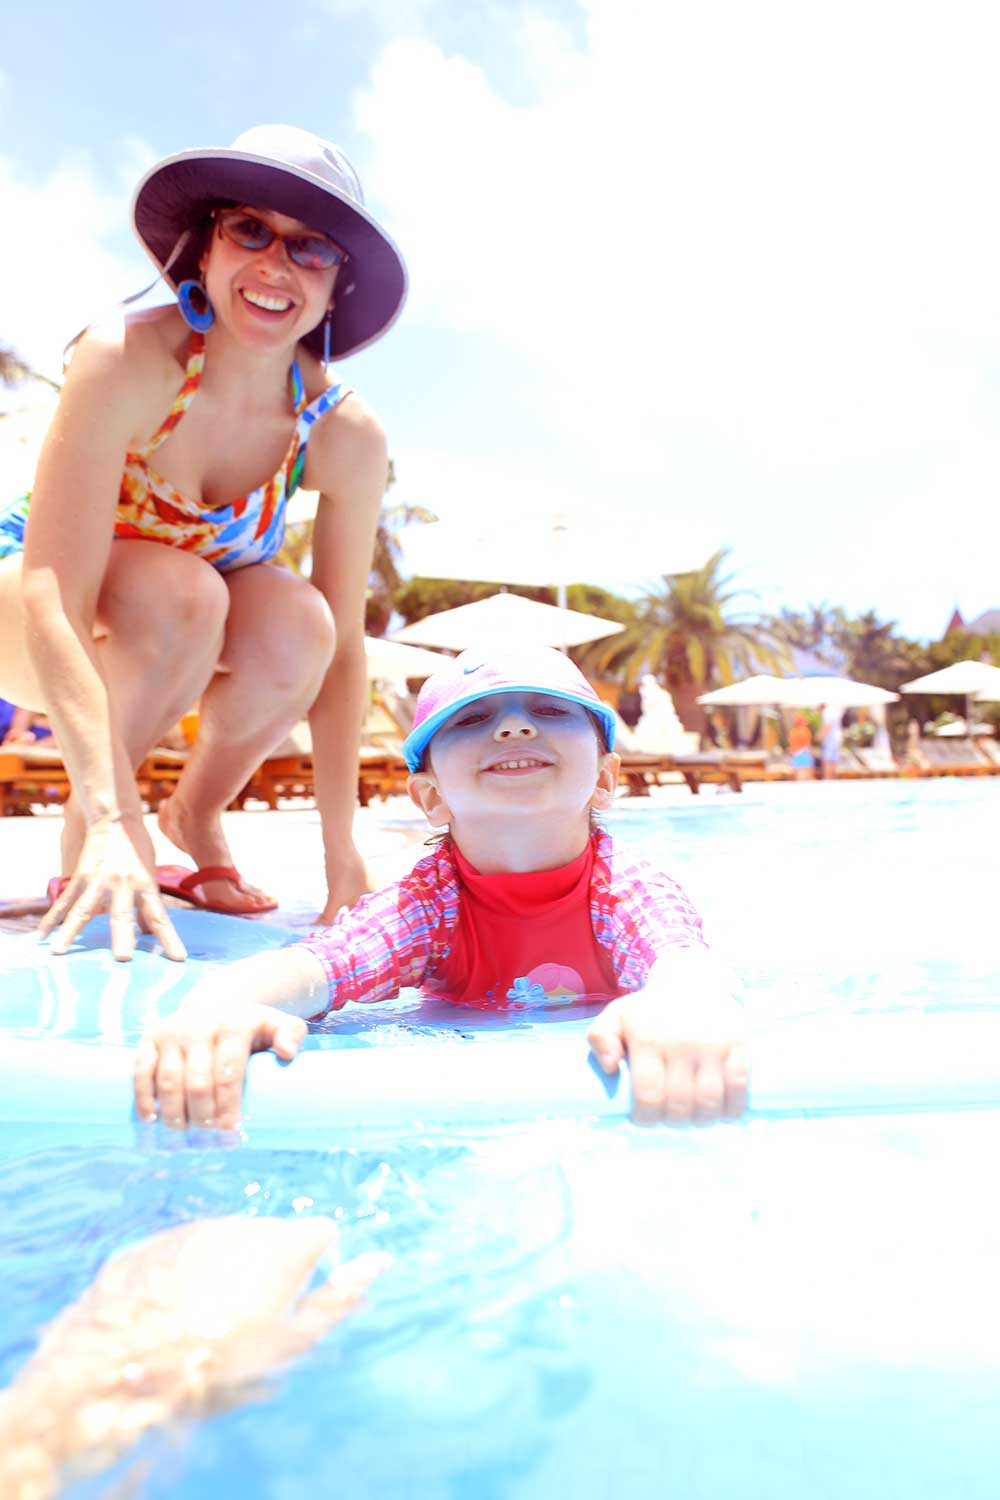 Our daughter learned how to swim in the French Village Pool of Beaches Turks & Caicos resort. We visited the resort three years in a row.